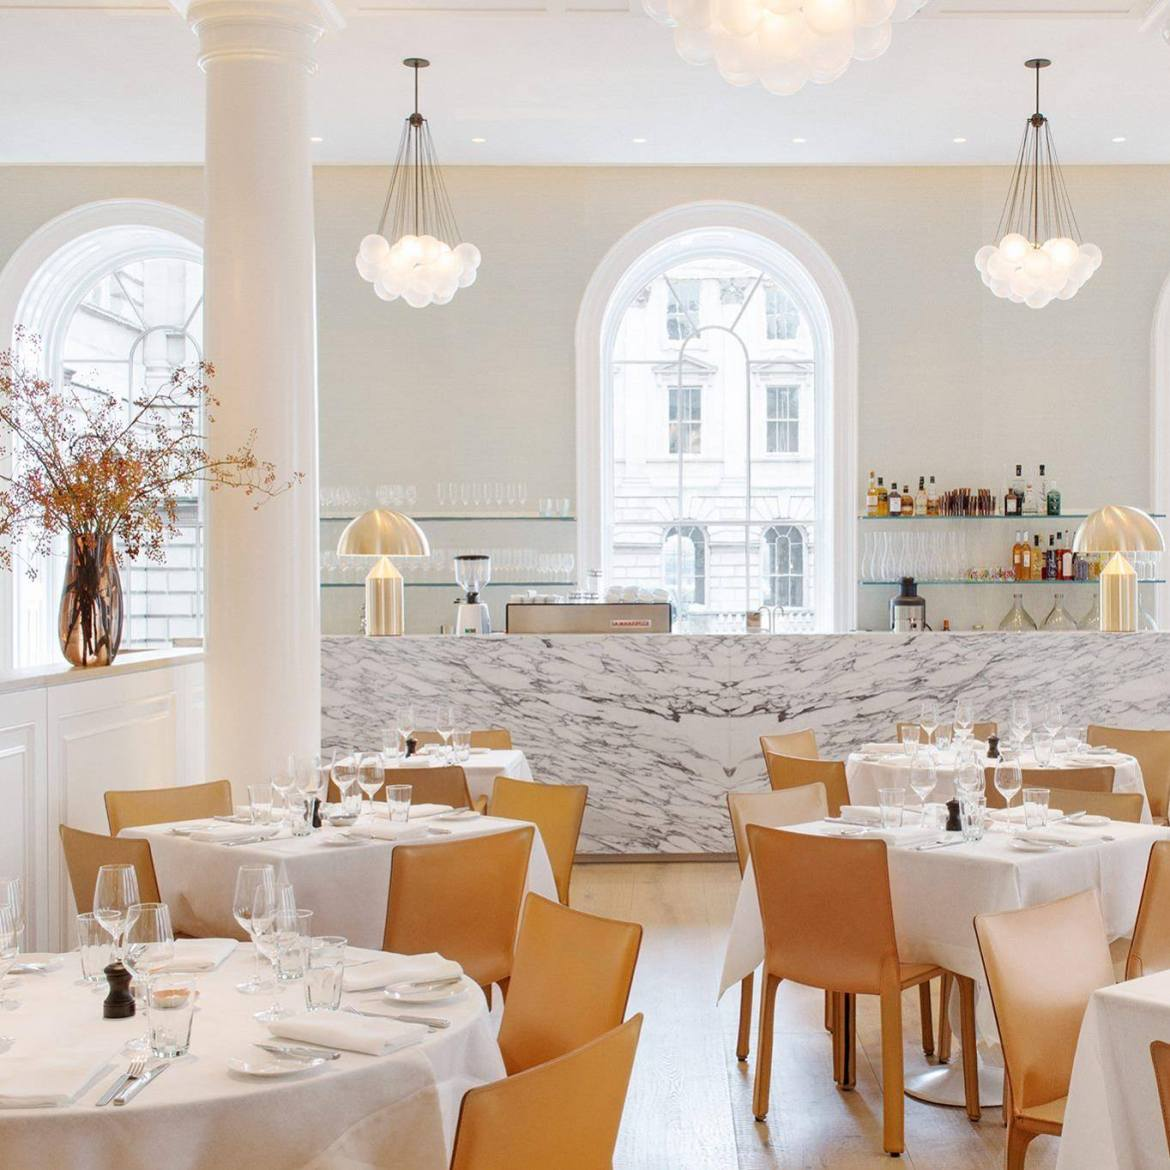 Spring restaurant london best sustainable restaurants